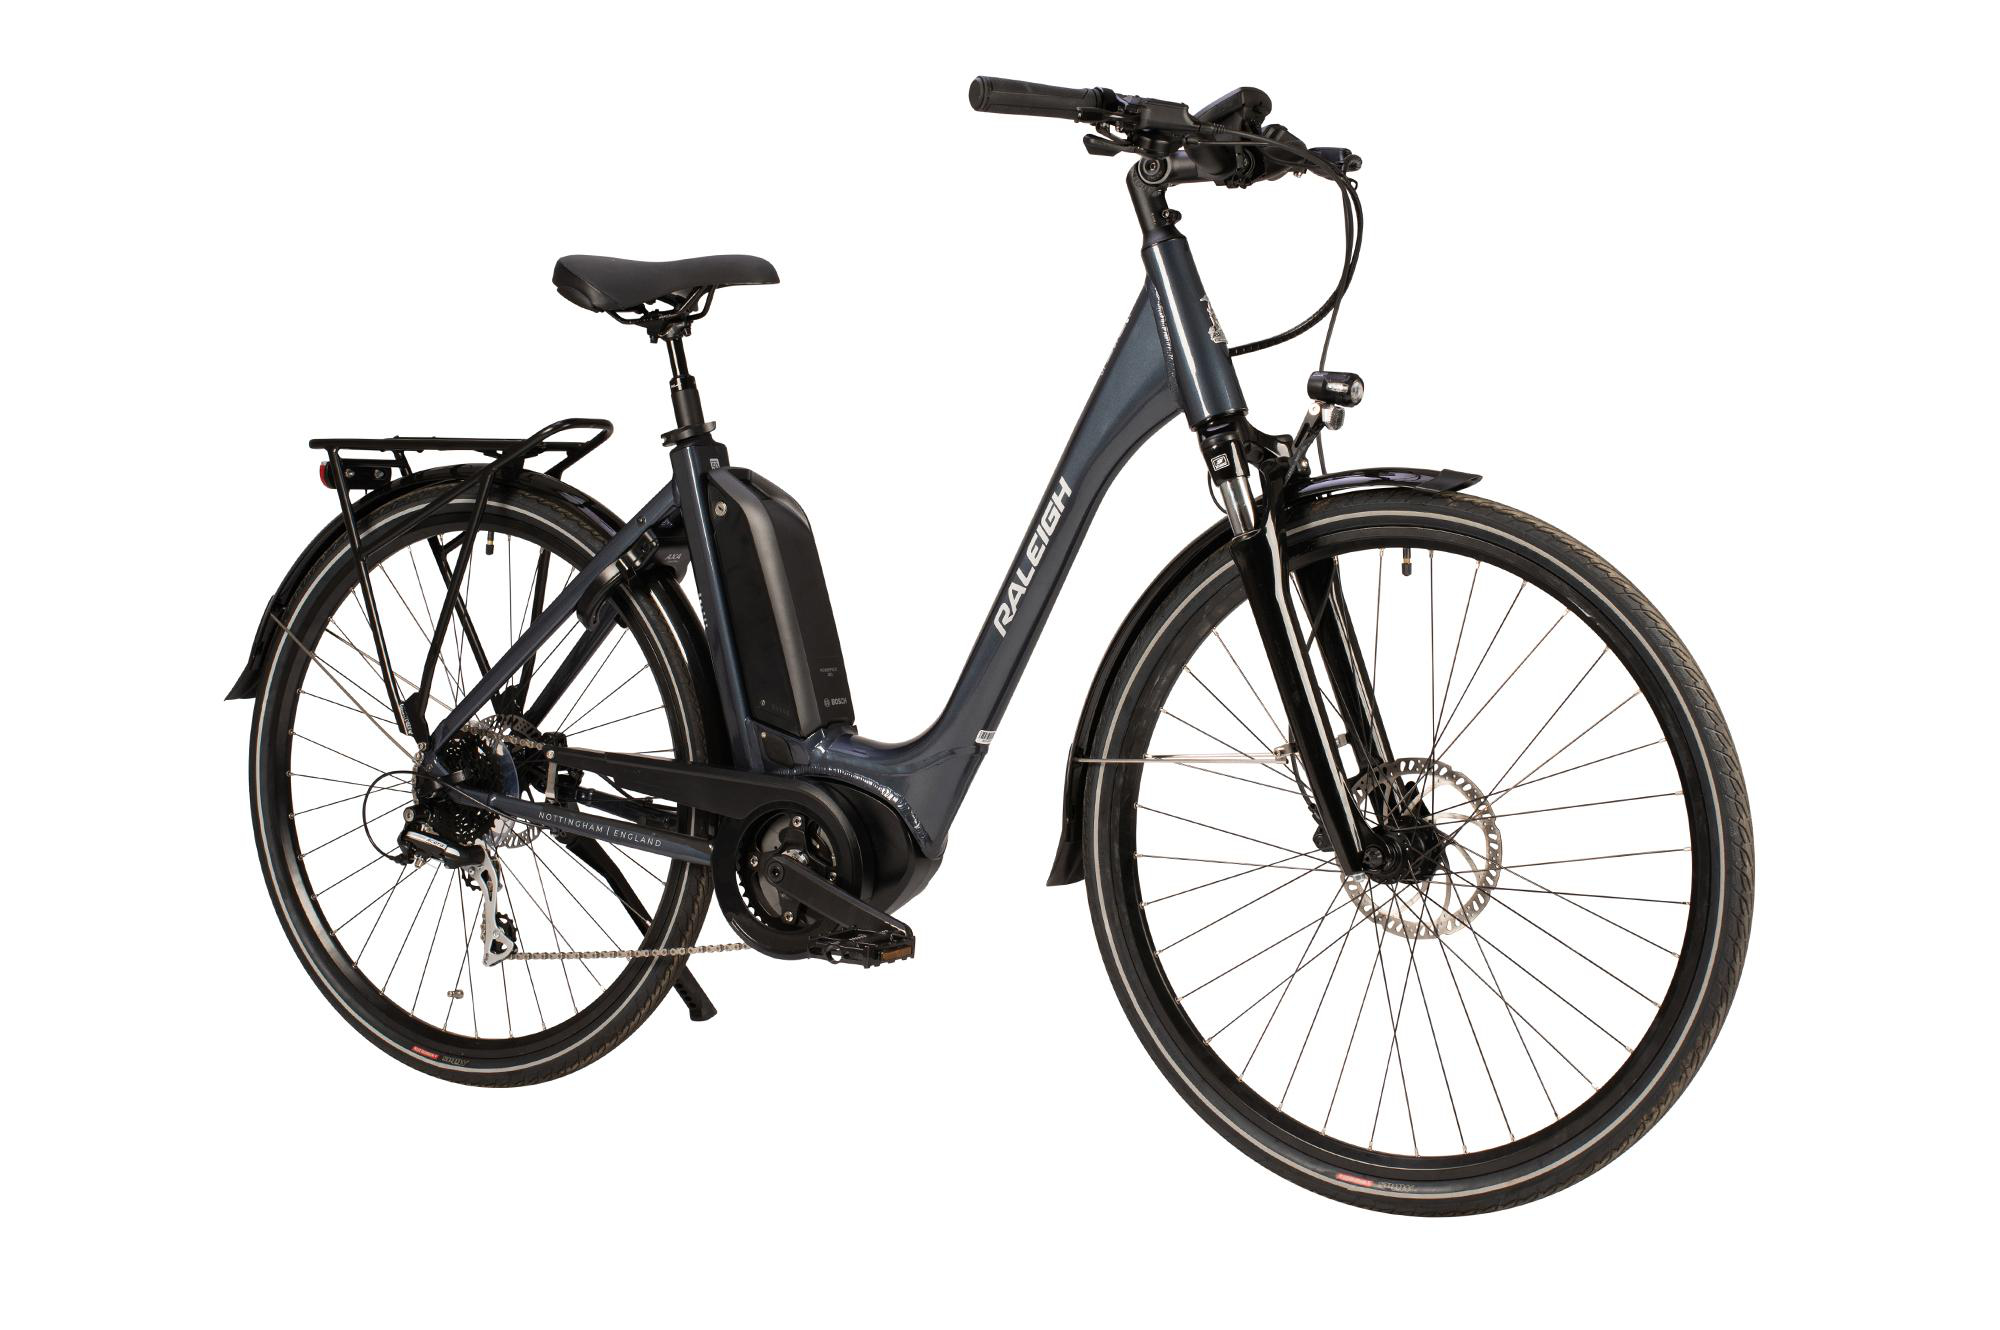 Side view of the Raleigh Motus Tour electric bike with low step frame